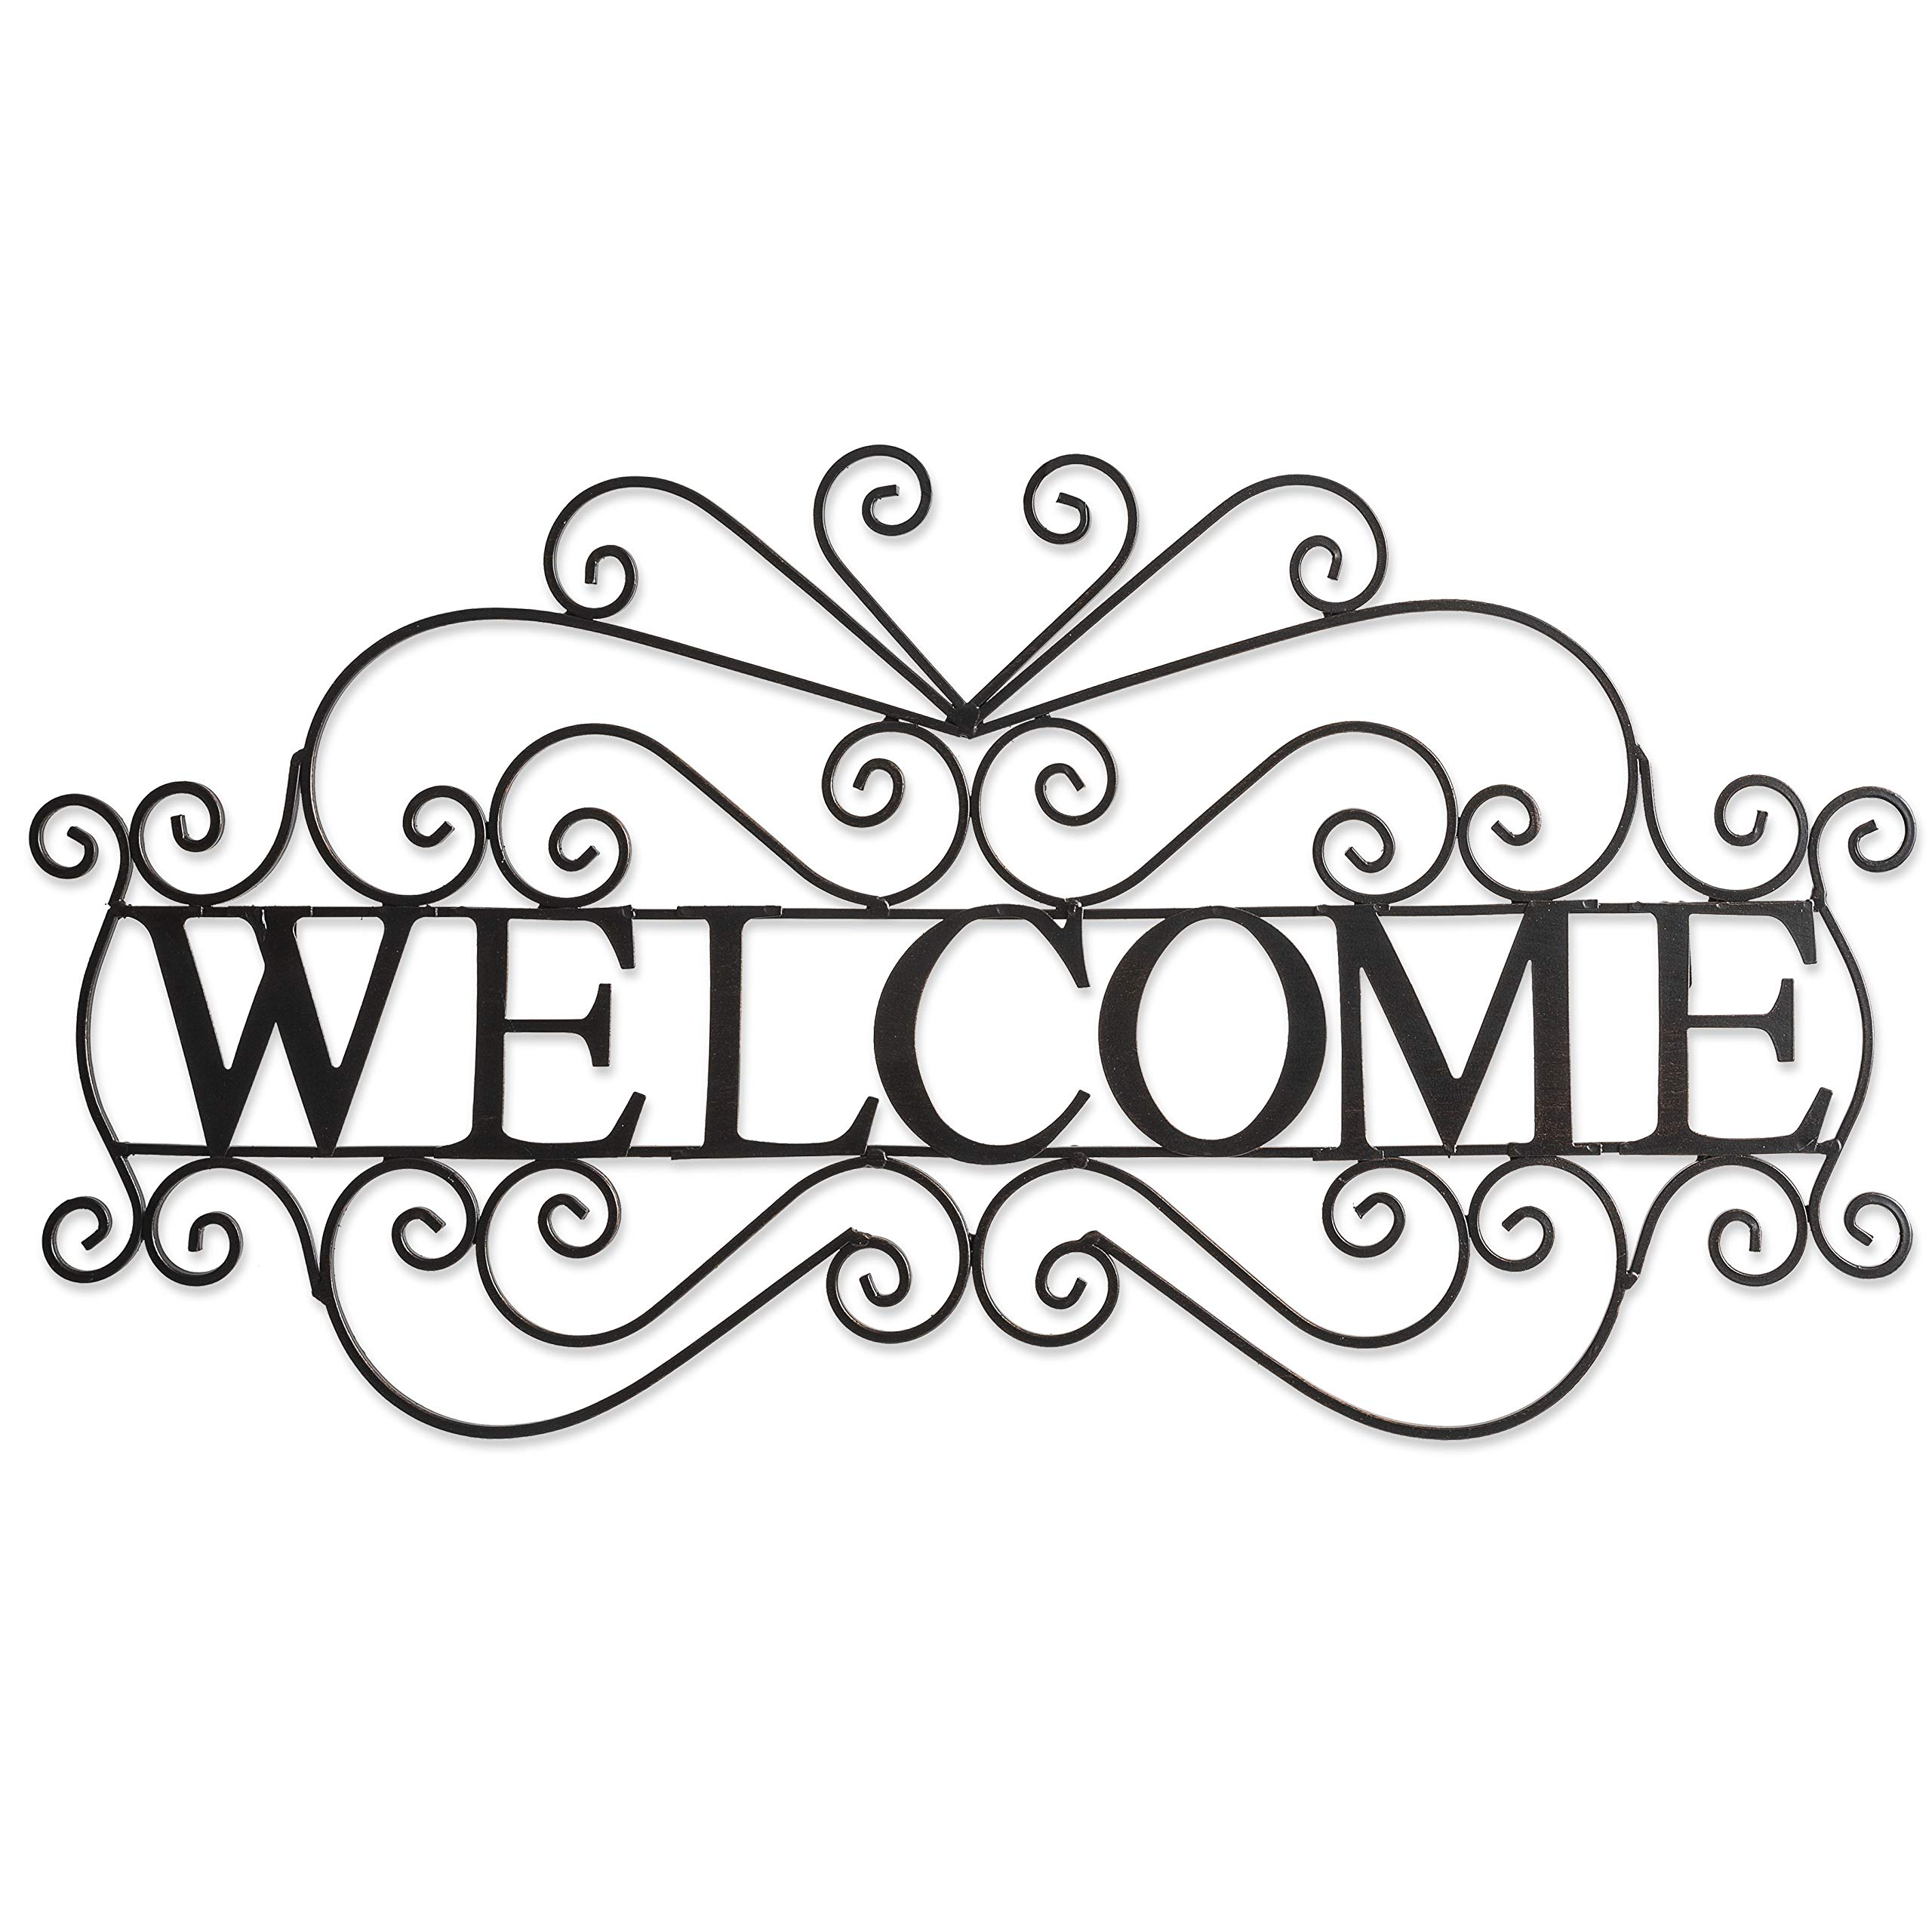 Besti Metal Welcome Sign (Large) Ornate, Bronze Plaque | Front Door, Porch, Patio, and Entryway Decor | Indoor and Outdoor Hanging Use | House and Home Decoration